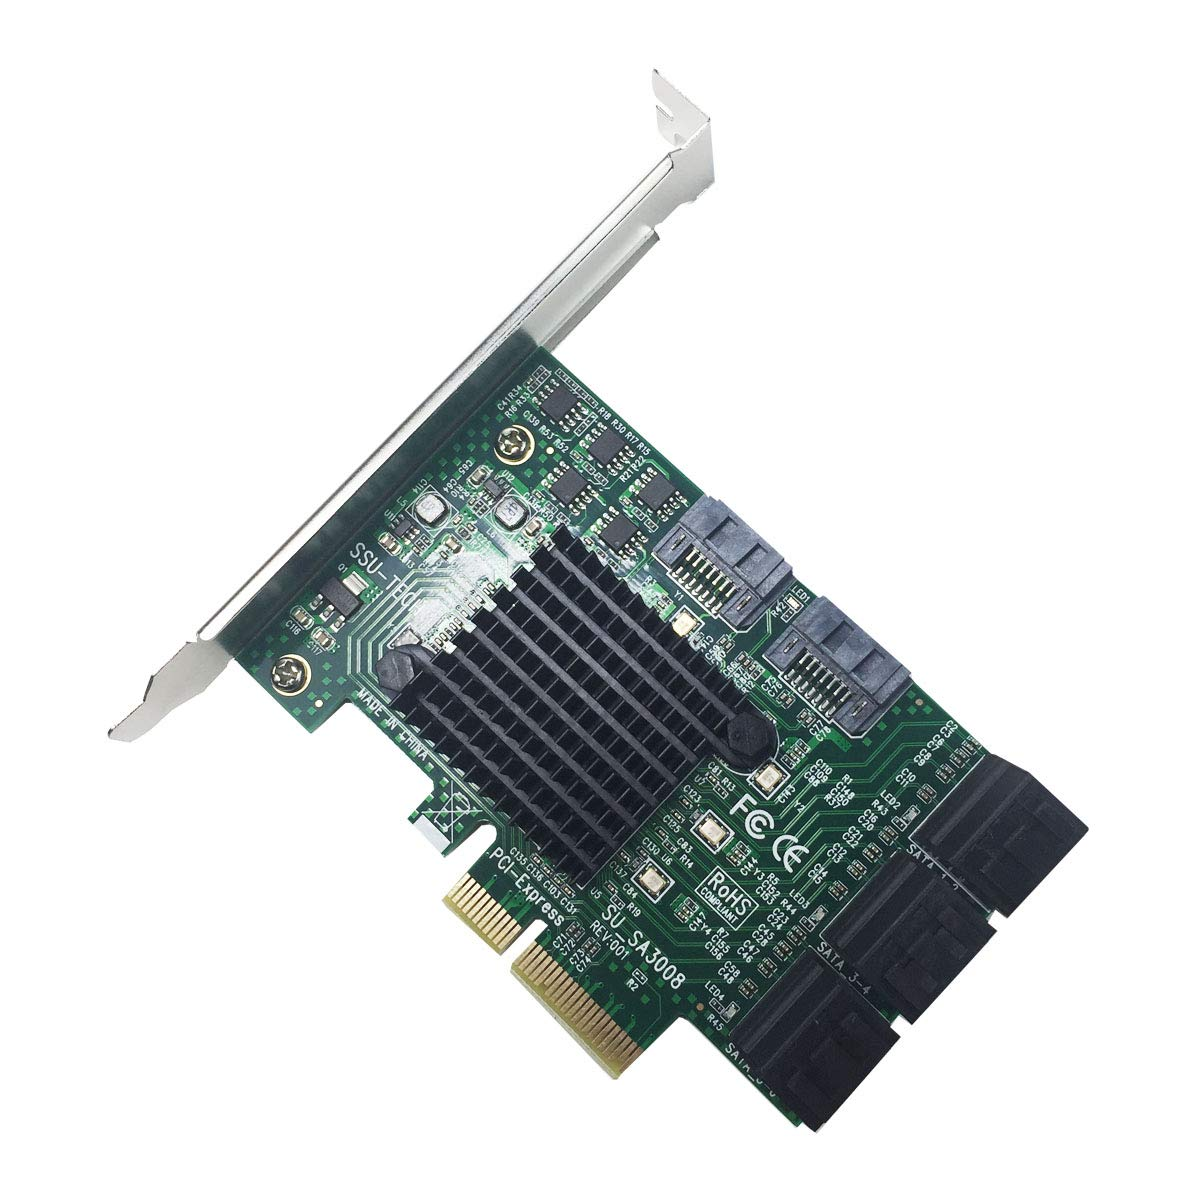 GLOTRENDS PCIe 2.0 X2 to SATA III 8 Ports Adapter Card (ASM Chipset) for IPFS Mining and Adding SATA 3.0 Devices (SA3008) by GLOTRENDS (Image #5)